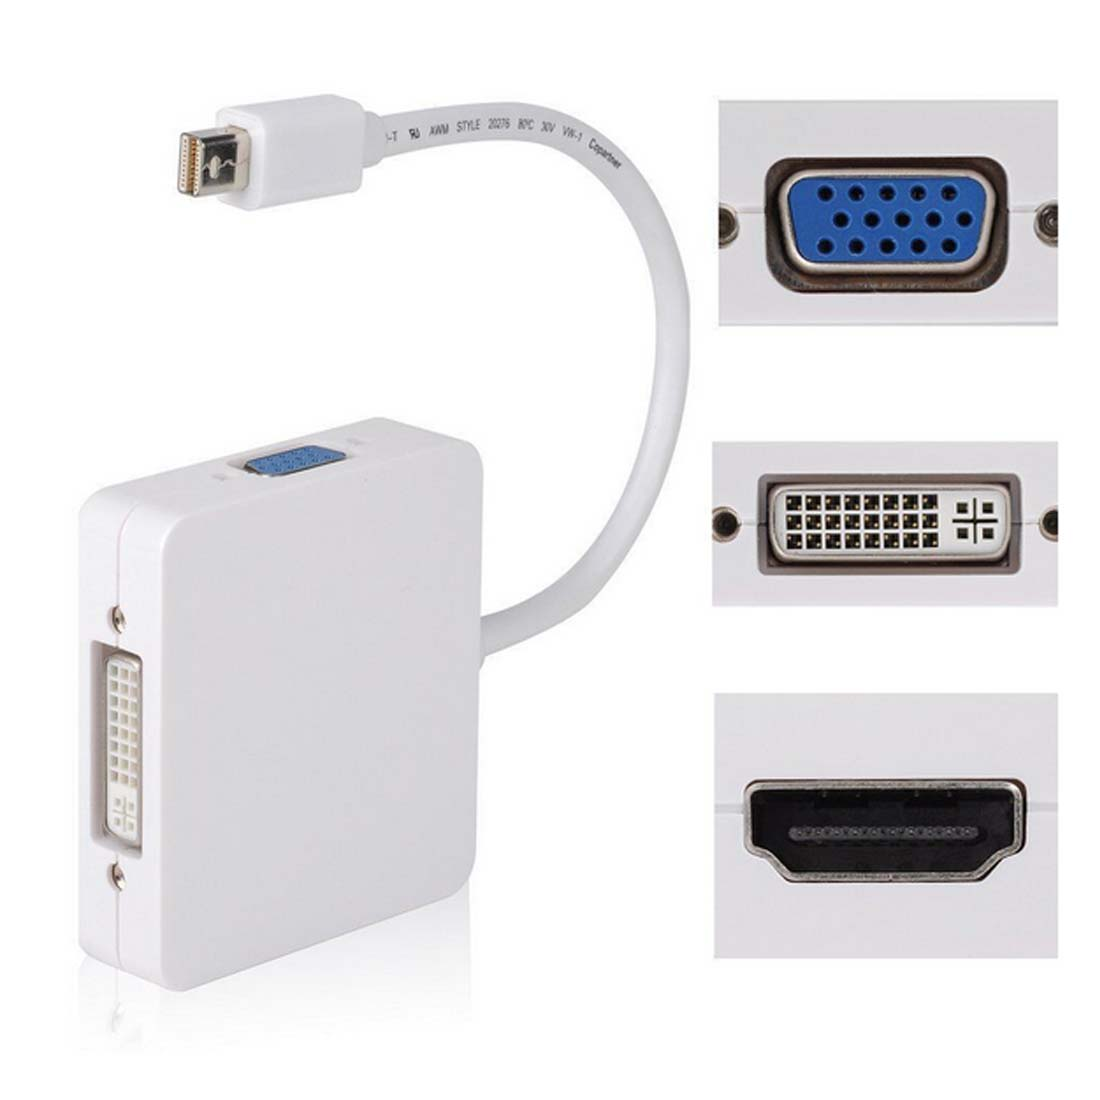 3 in1 Thunder bolt Mini Displayport DP to HDMI DVI VGA Adapter Display Port Cable for Apple Mac Book Pro Mac Book Air 3 in1 thunder bolt mini displayport dp to hdmi dvi vga adapter display port cable for apple mac book pro mac book air